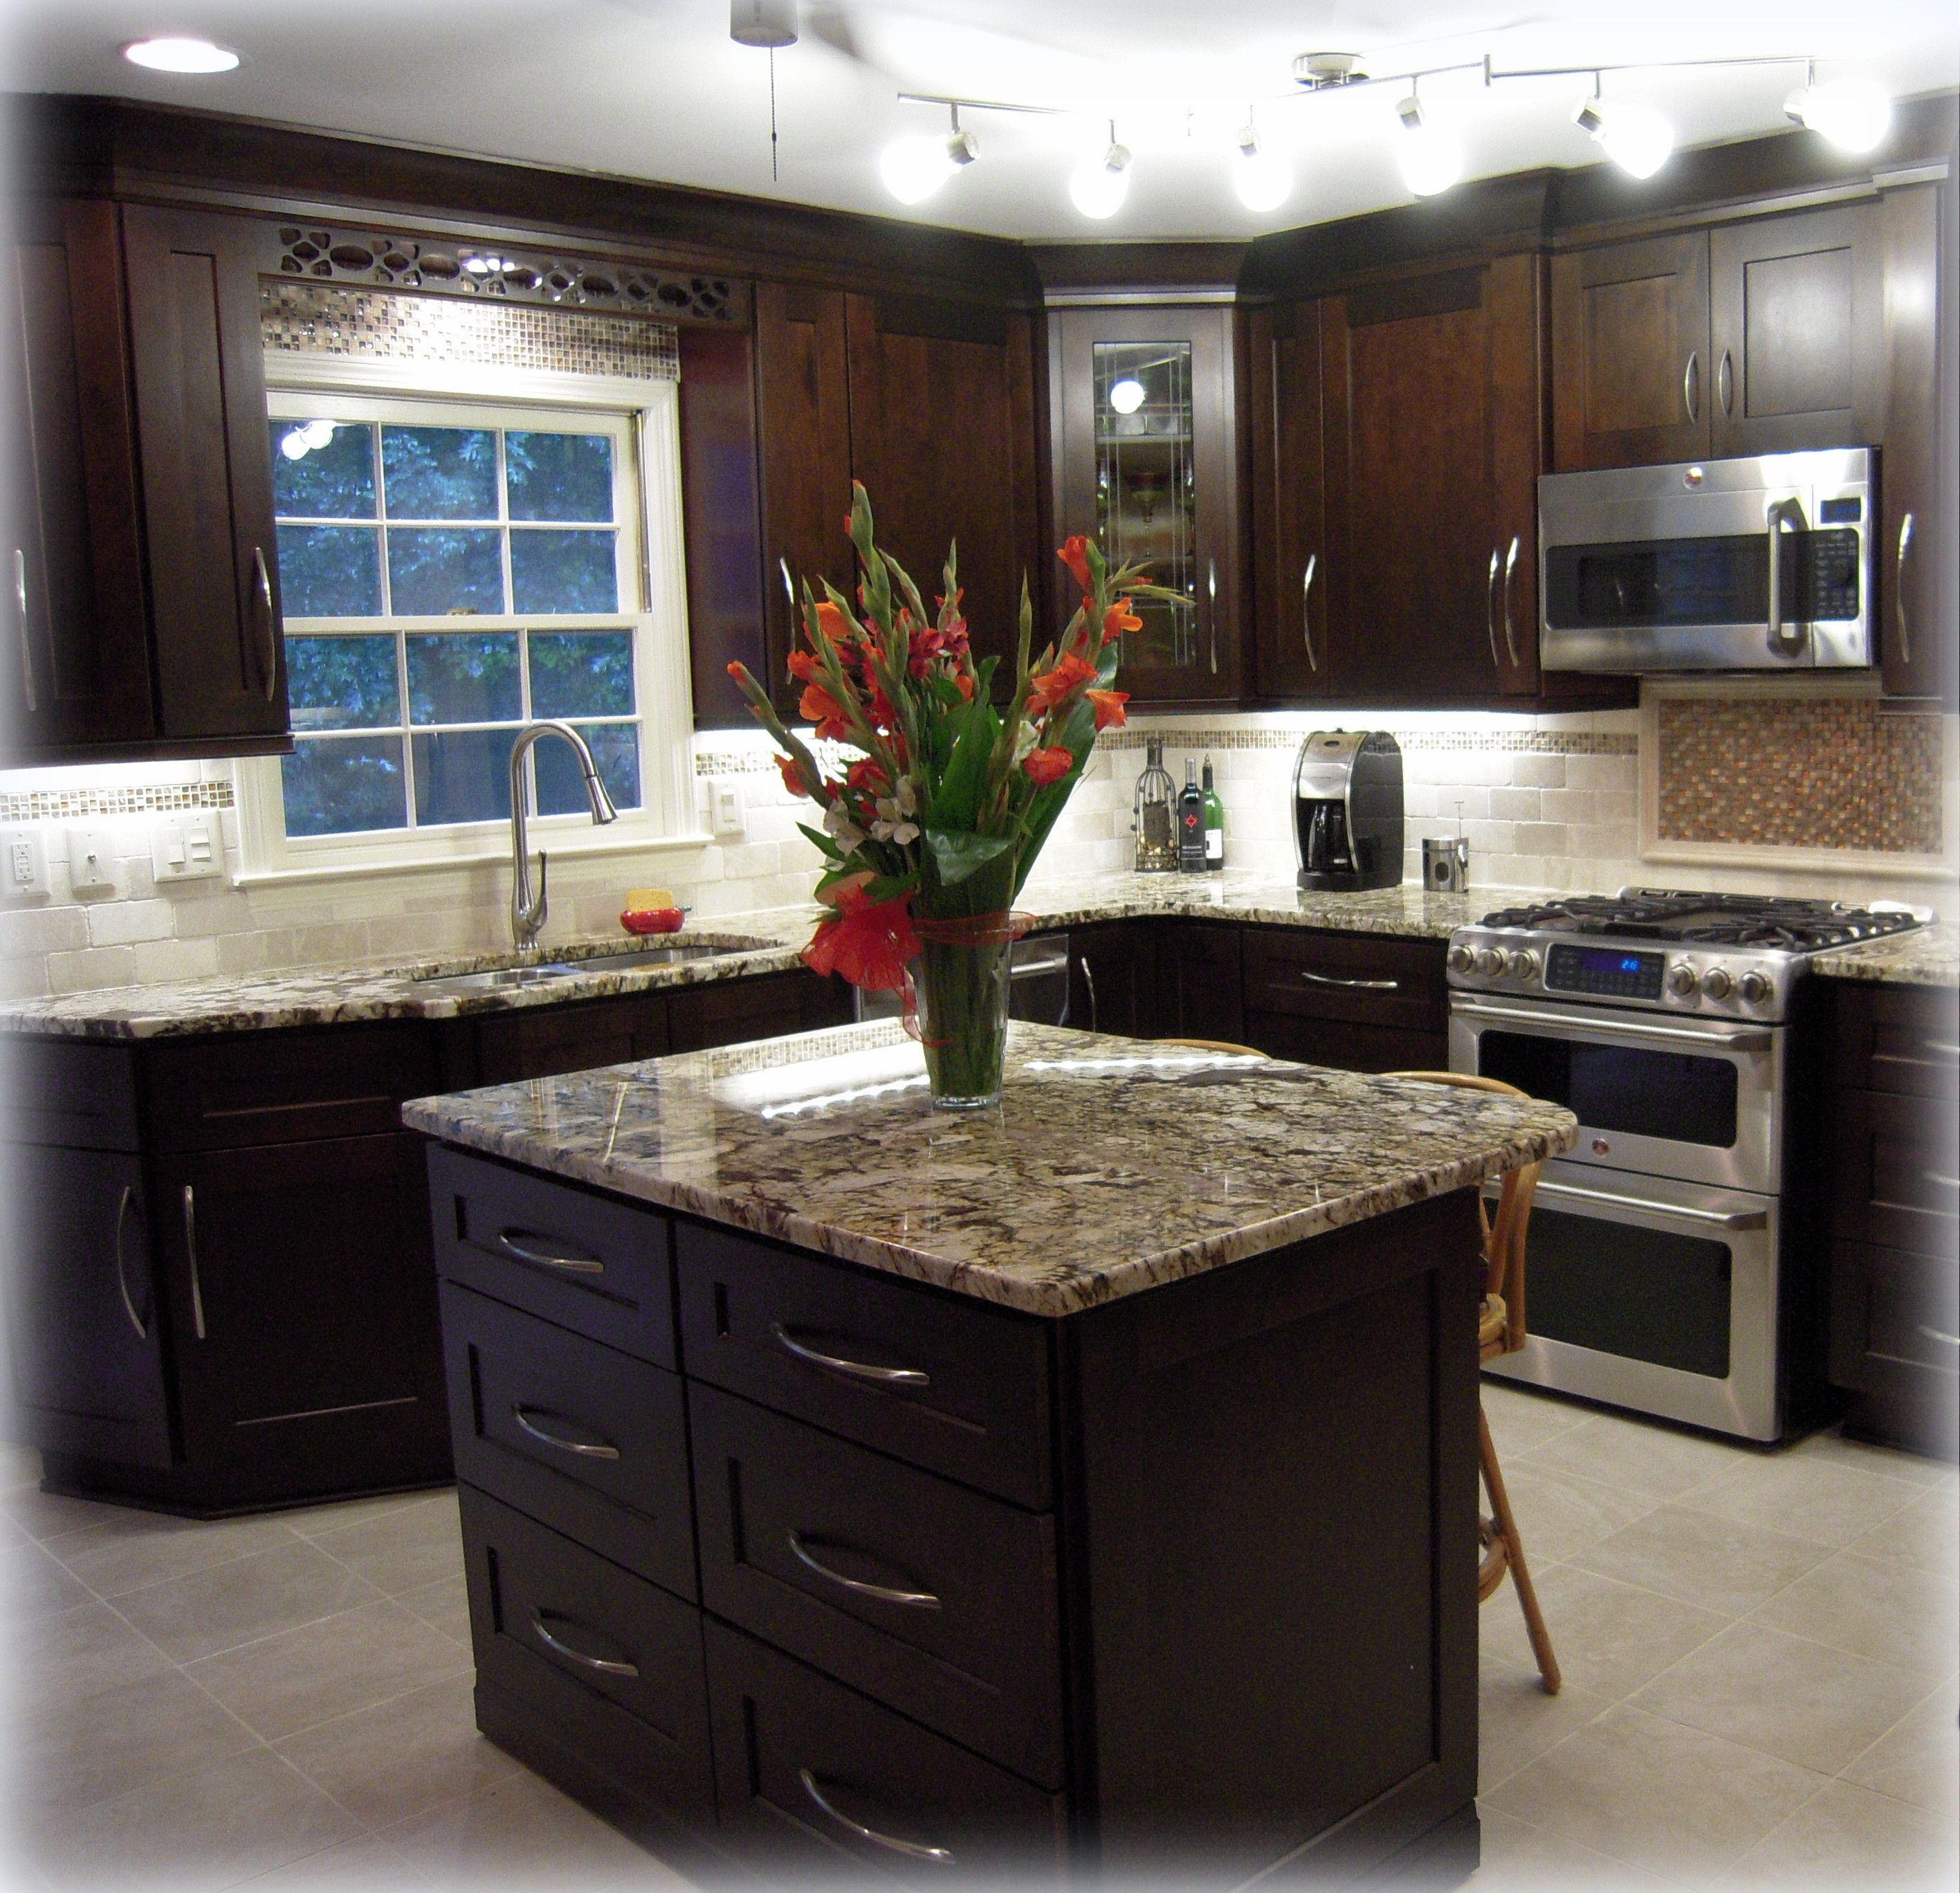 S Kitchen Cabinets Captivating 100  Under Kitchen Cabinet Lights   Kitchen Elegant Two Tone Decorating Design